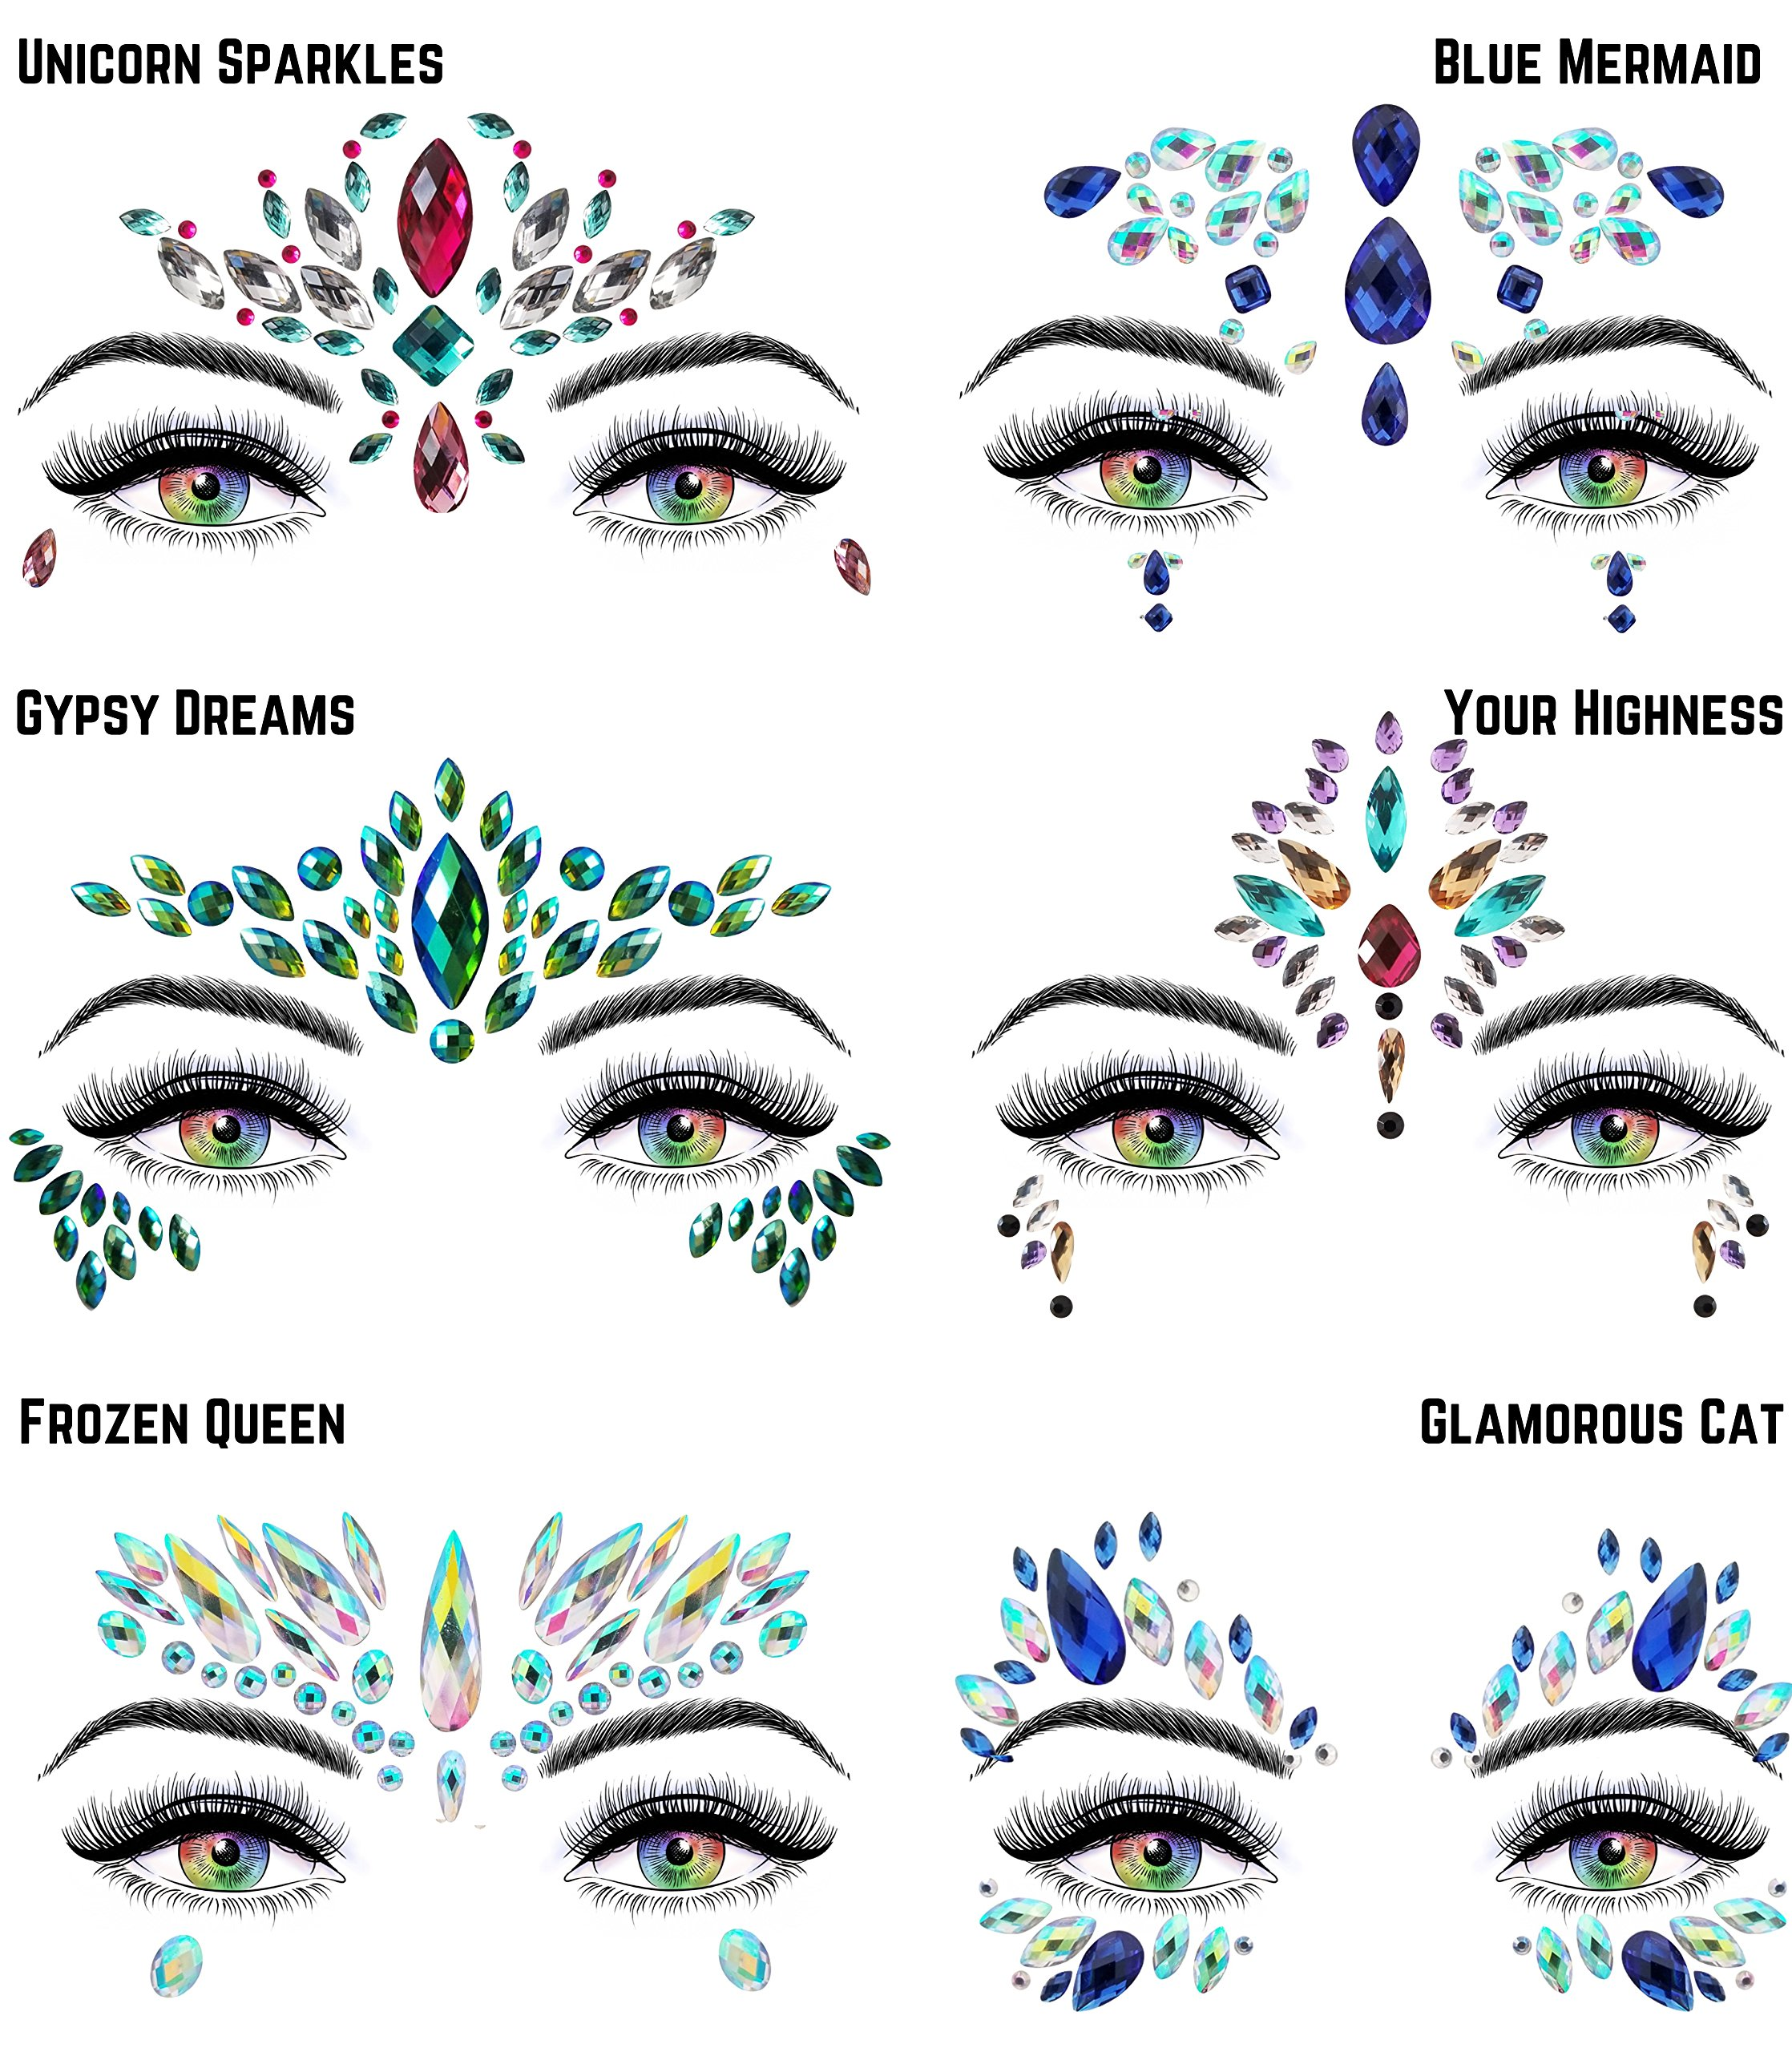 6 Stick On Face Jewels Sets, Gems, Glitter, Gem-Stones, Rhinestones Stickers, Temporary Tattoo - Self-Adhesive, Bindi, Indian, Mermaid Crystals. Accessories For Body, Women, Festivals, Rave, or Party by Luxxe Hour (Image #8)